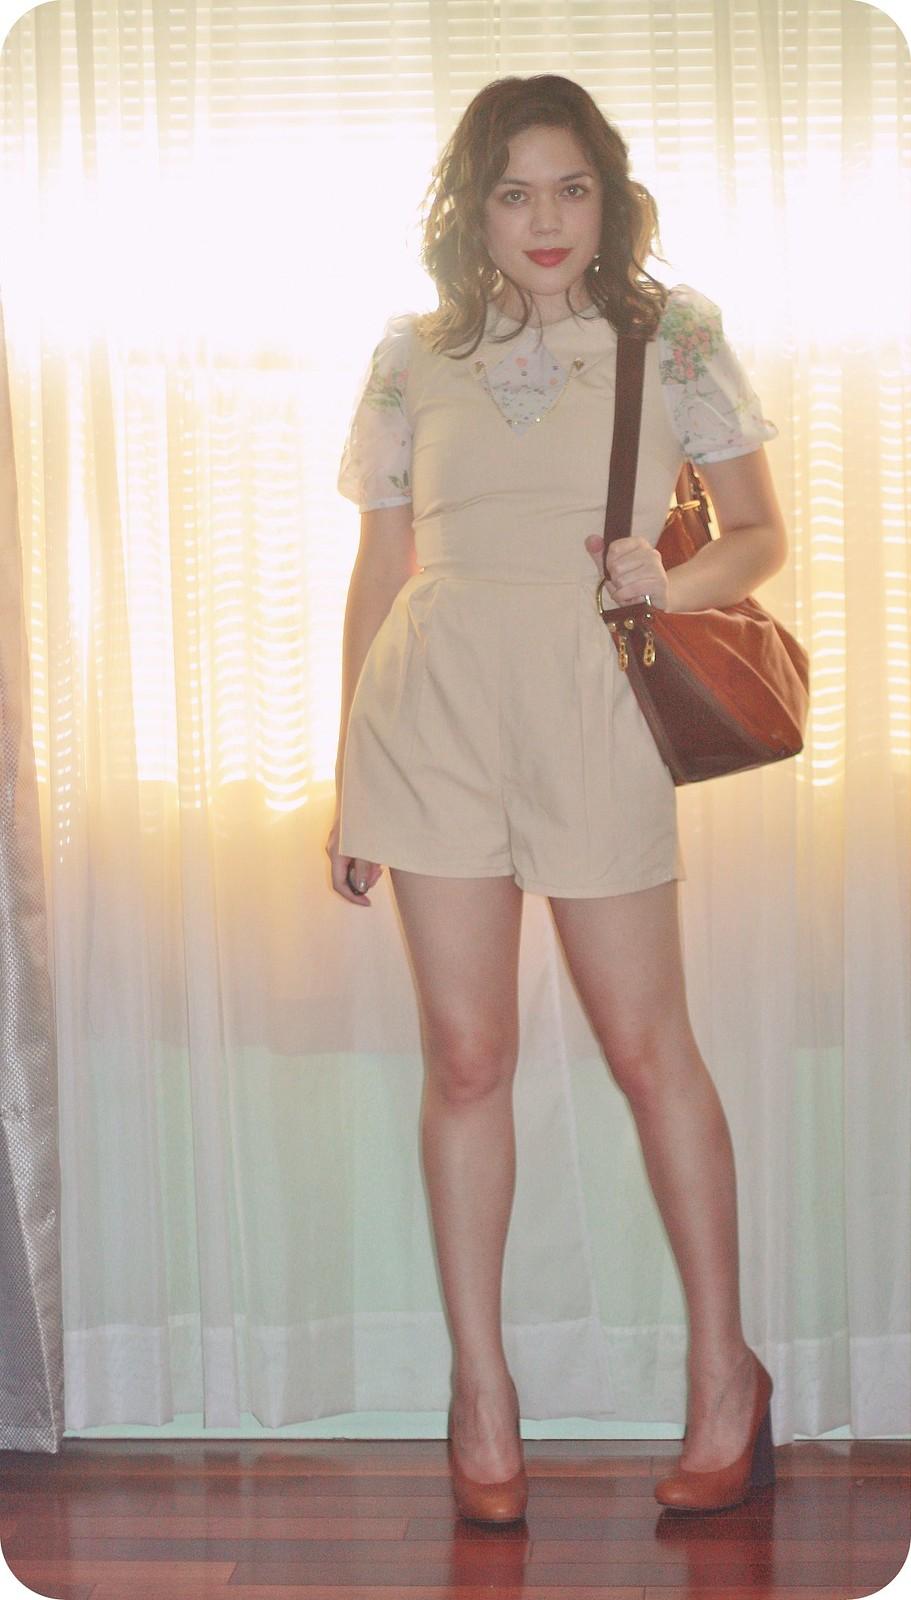 Sweets and Hearts style: outfit featuring Disaya romper, Topshop heels, Tiny Musings handmade ice cream collar clips